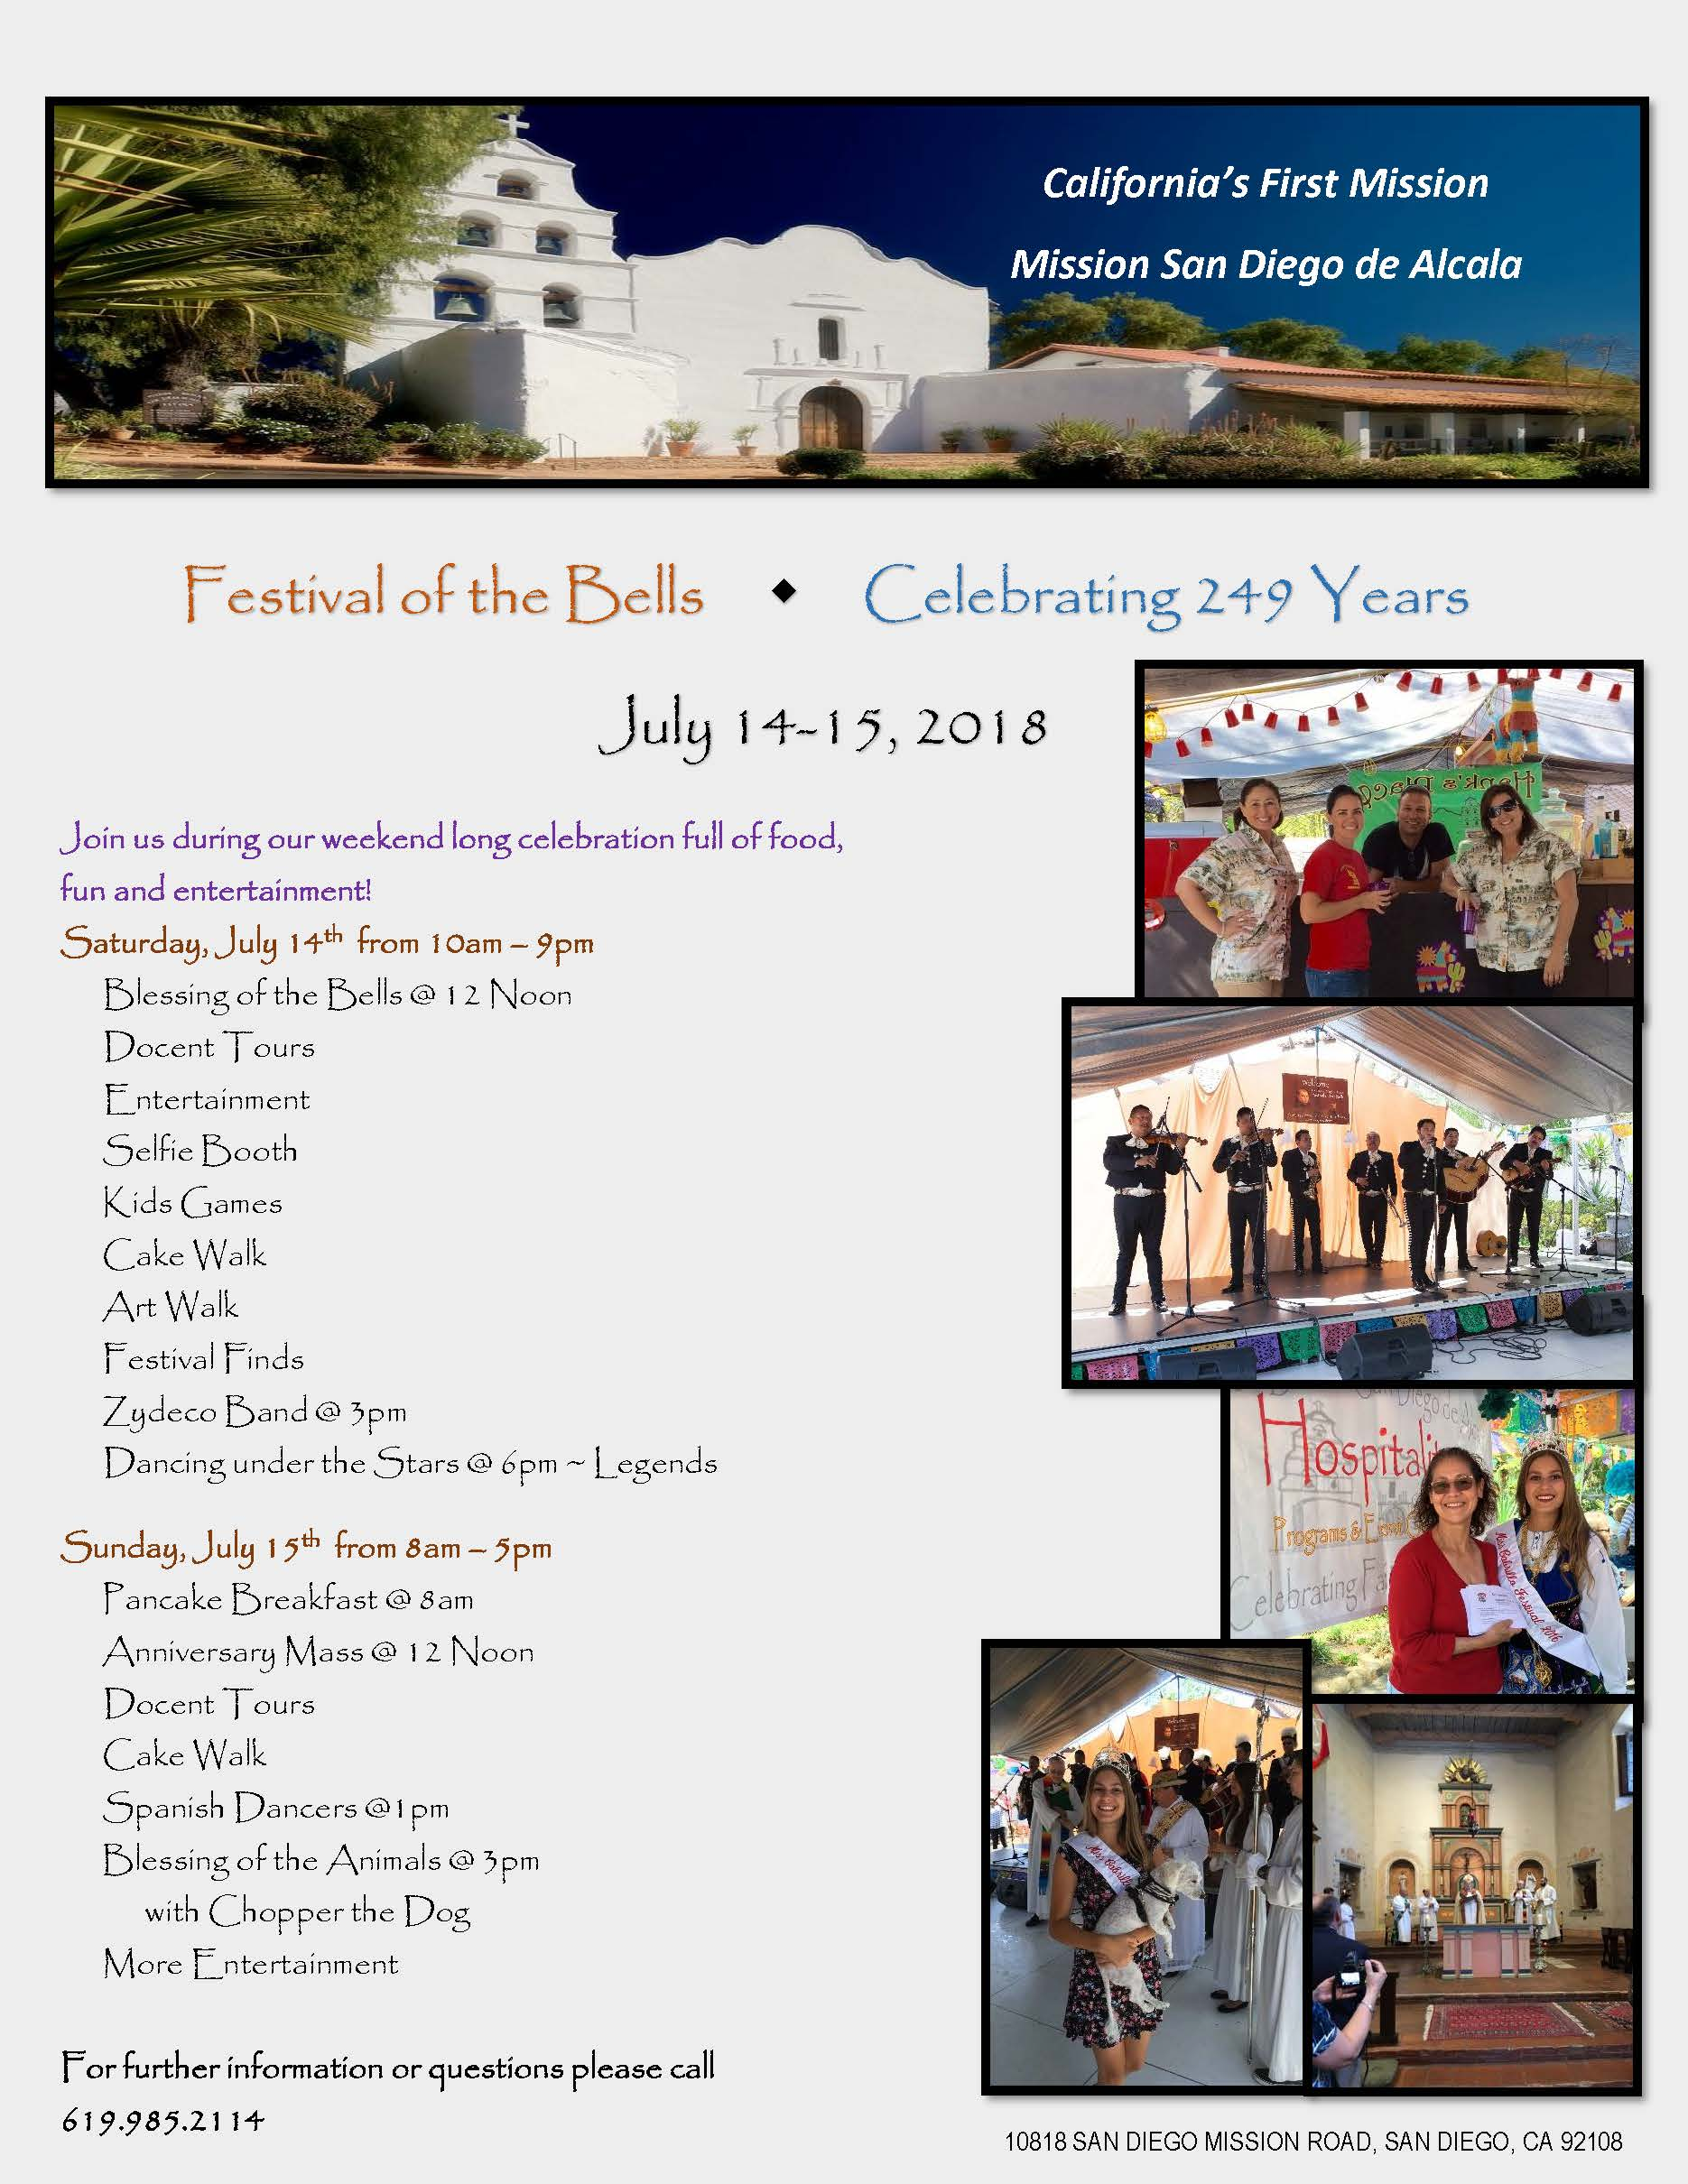 Festival of the Bells Schedule